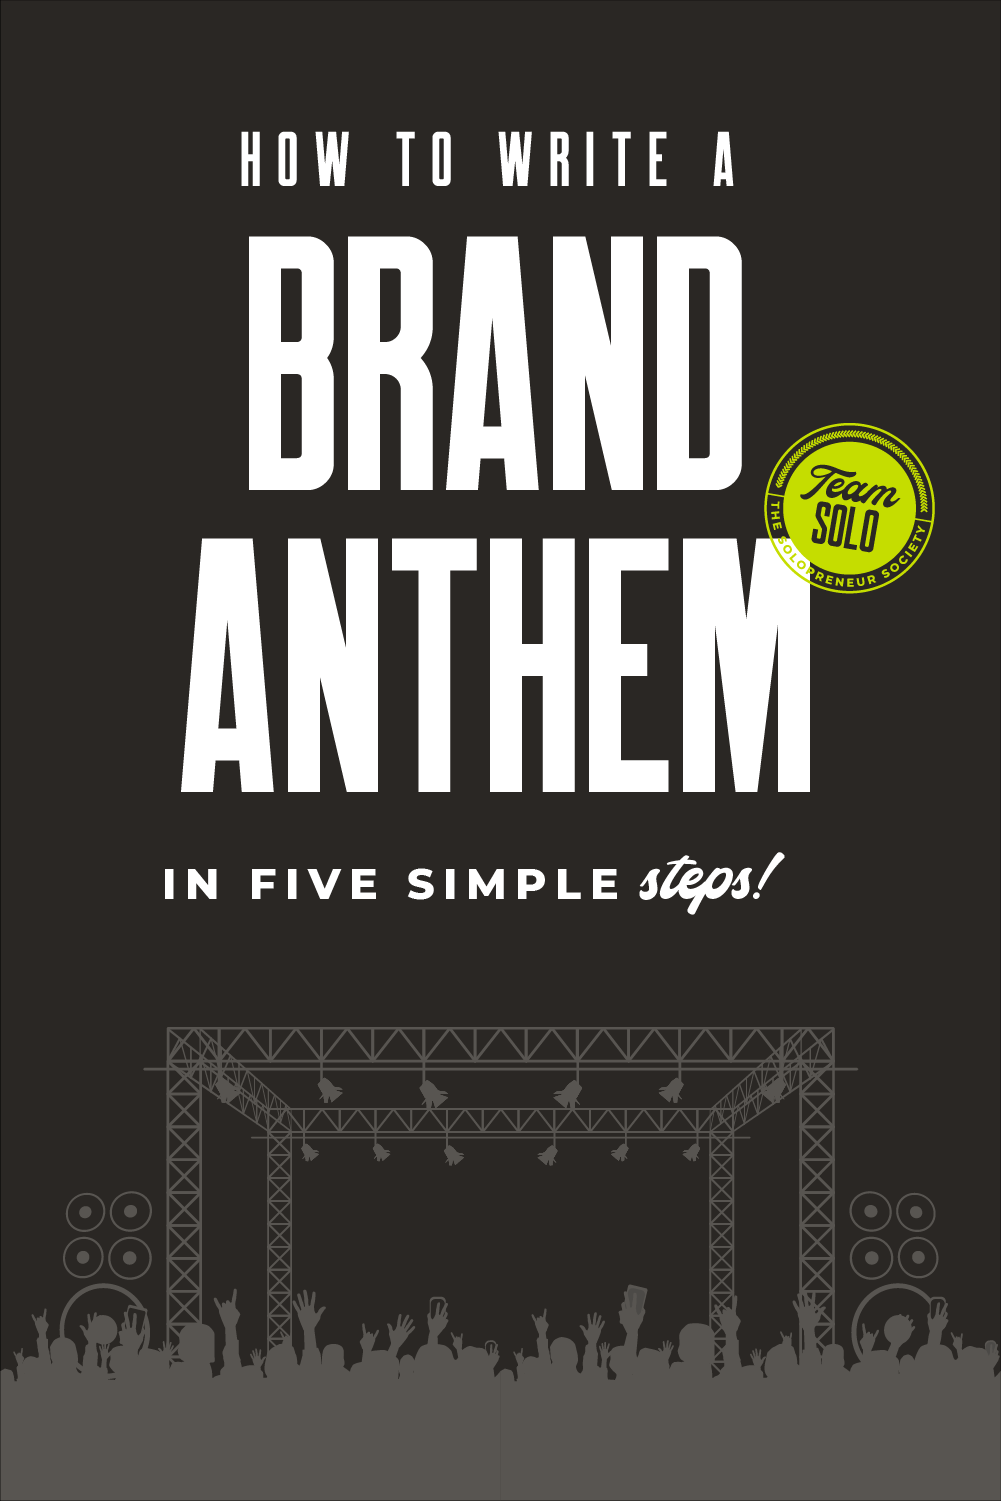 How To Write A Brand Anthem They'll Play On Repeat. All day. Everyday!